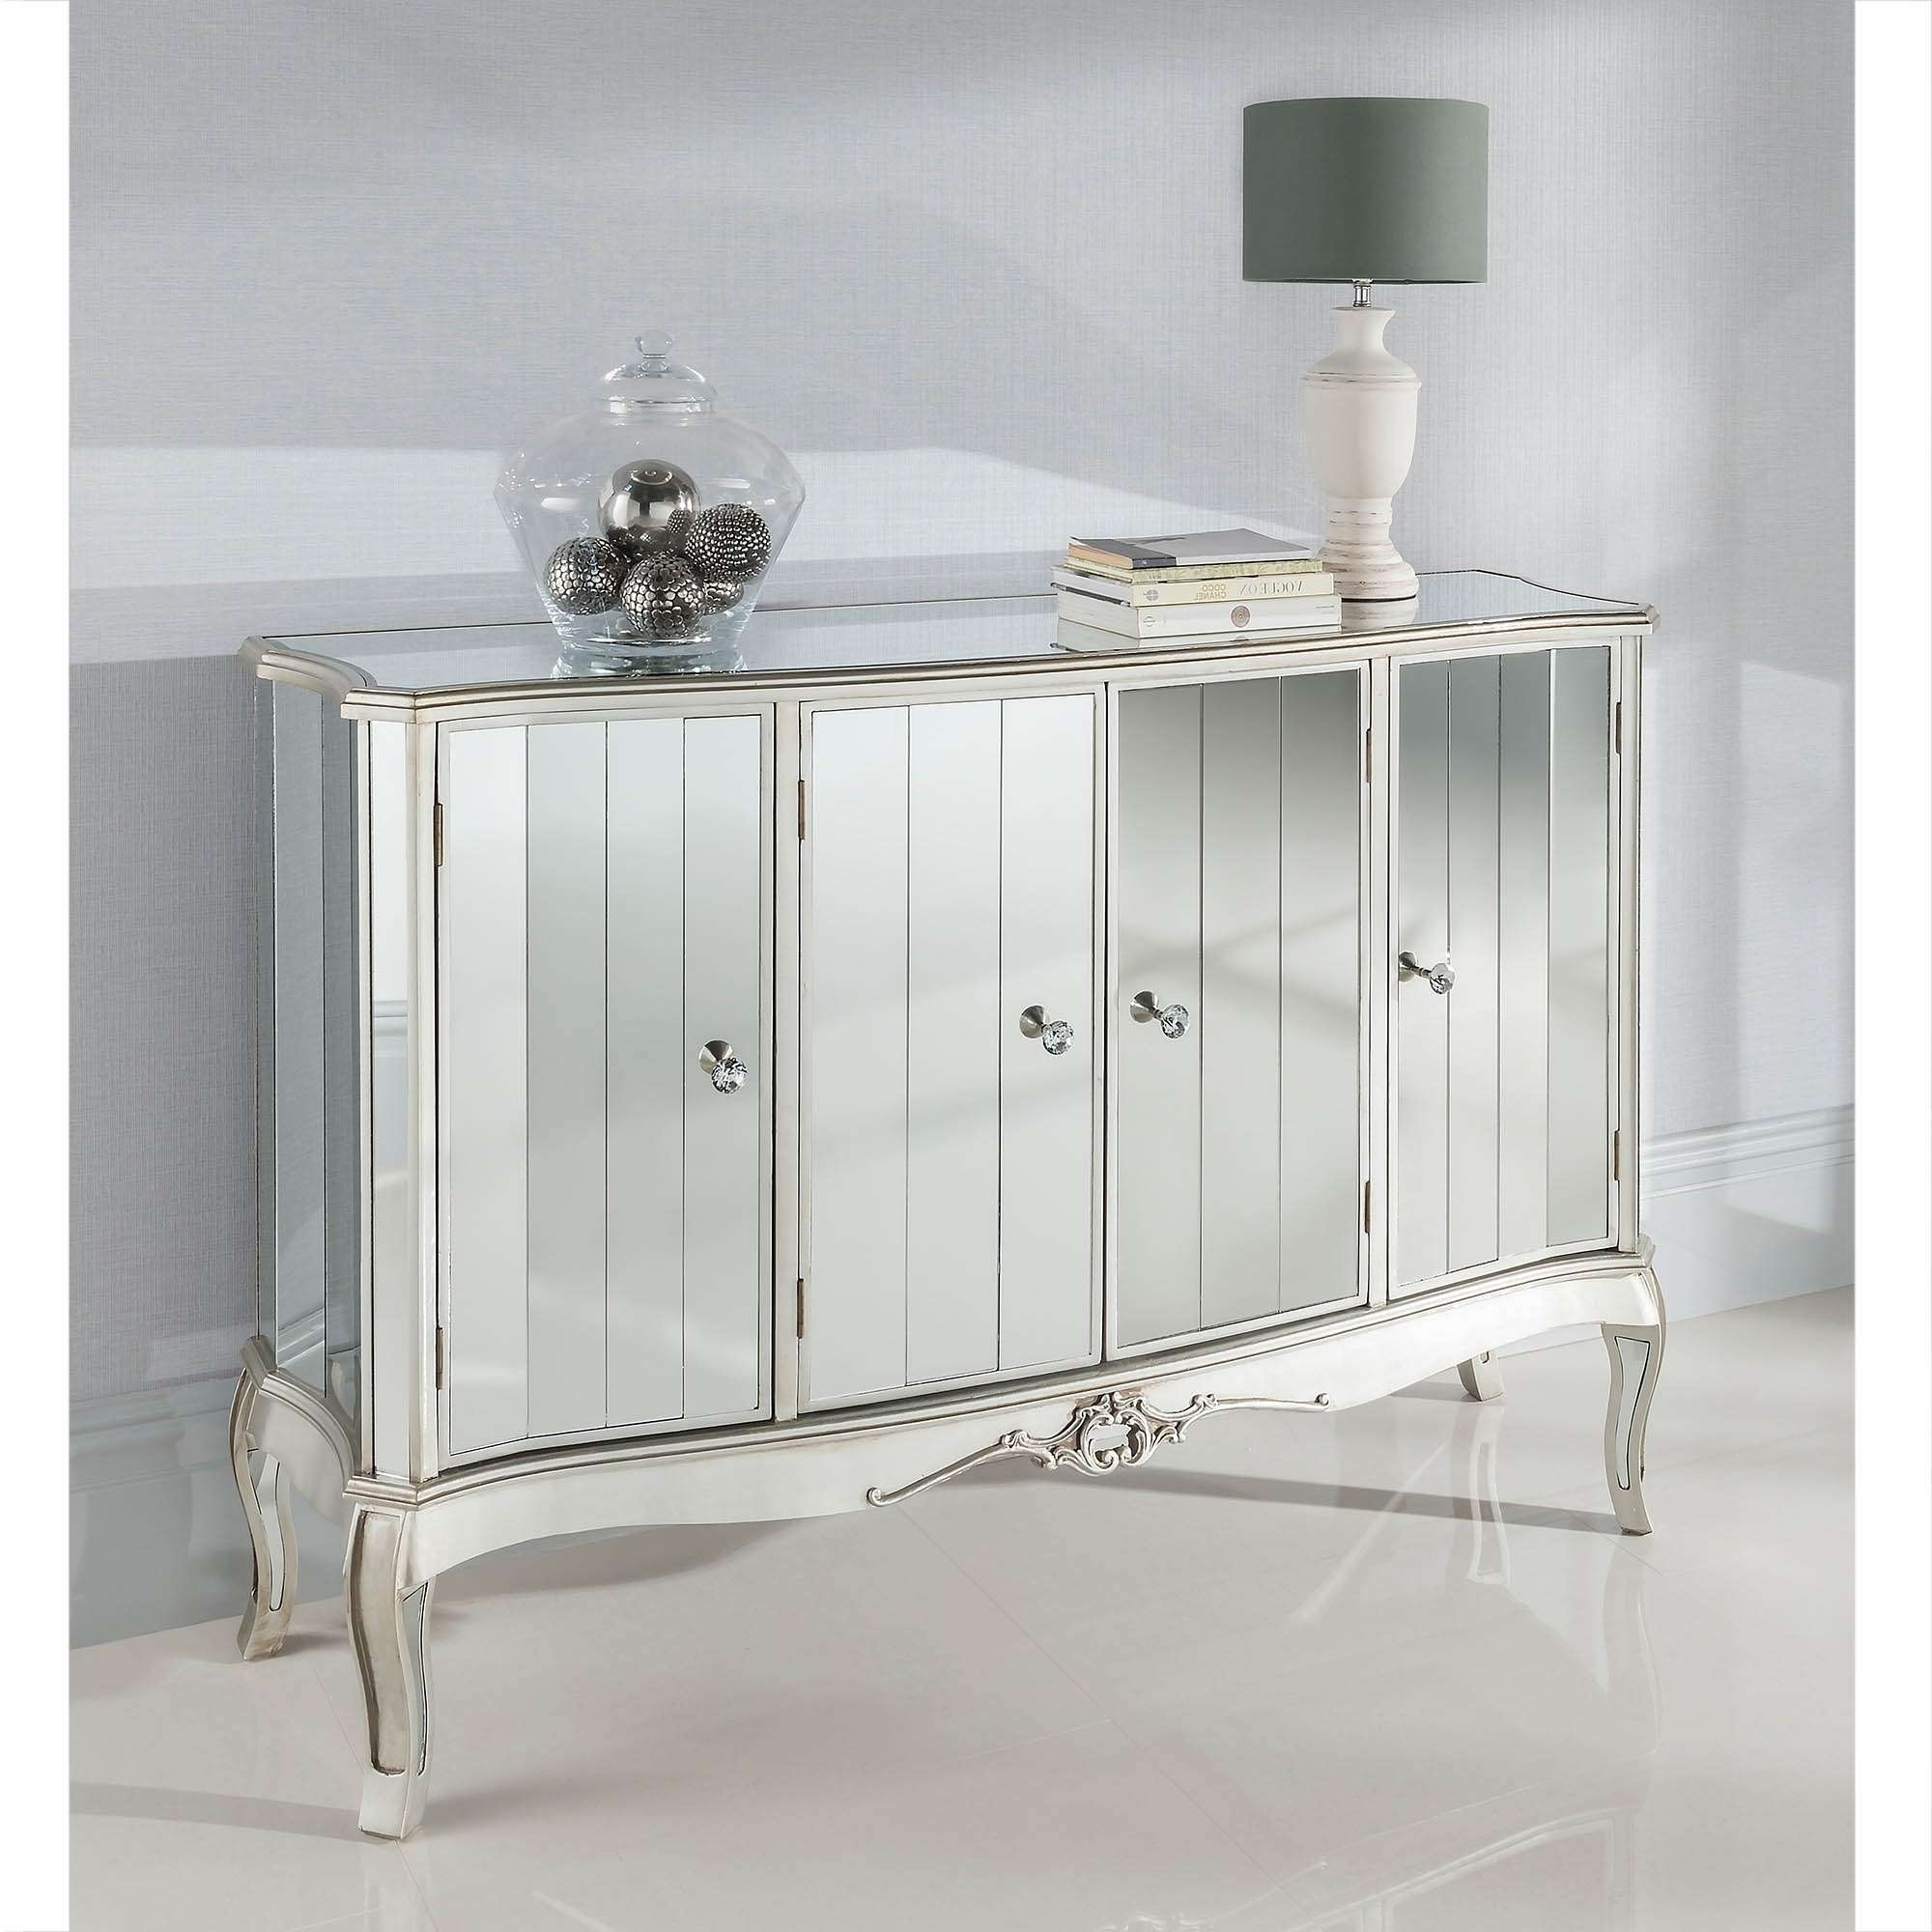 Argente Mirrored Four Door Sideboard | Mirrored Furniture Pertaining To Mirror Sideboards (View 2 of 20)